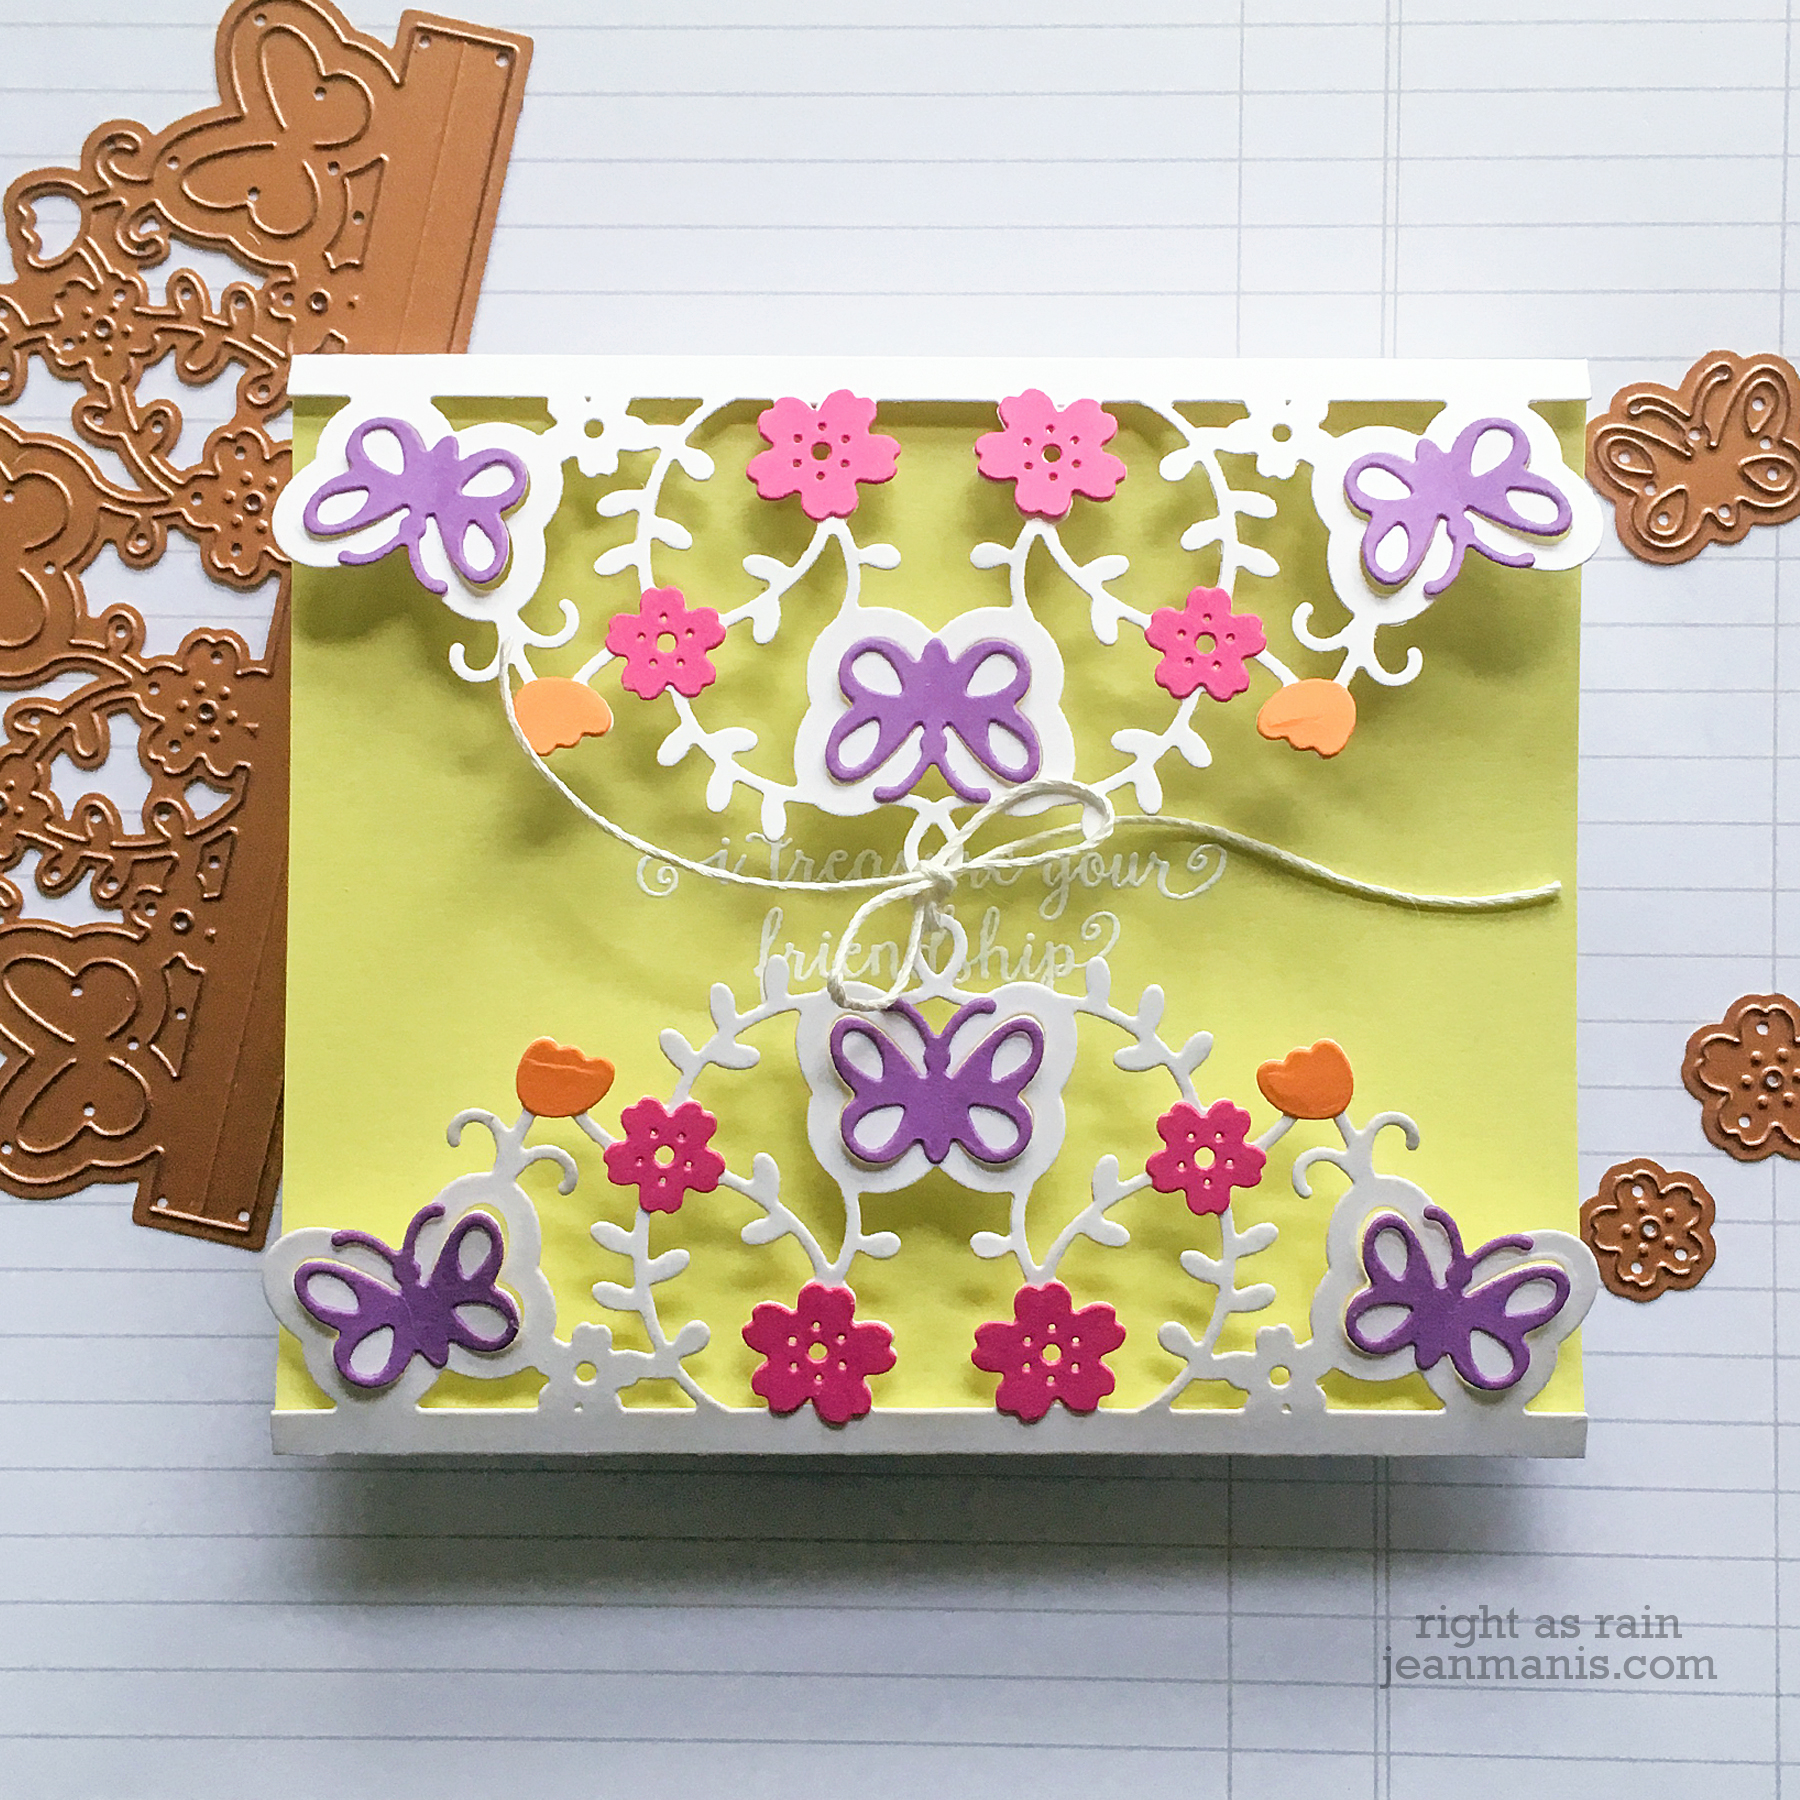 Spellbinders February 2019 Small Die of the Month – Right as Rain